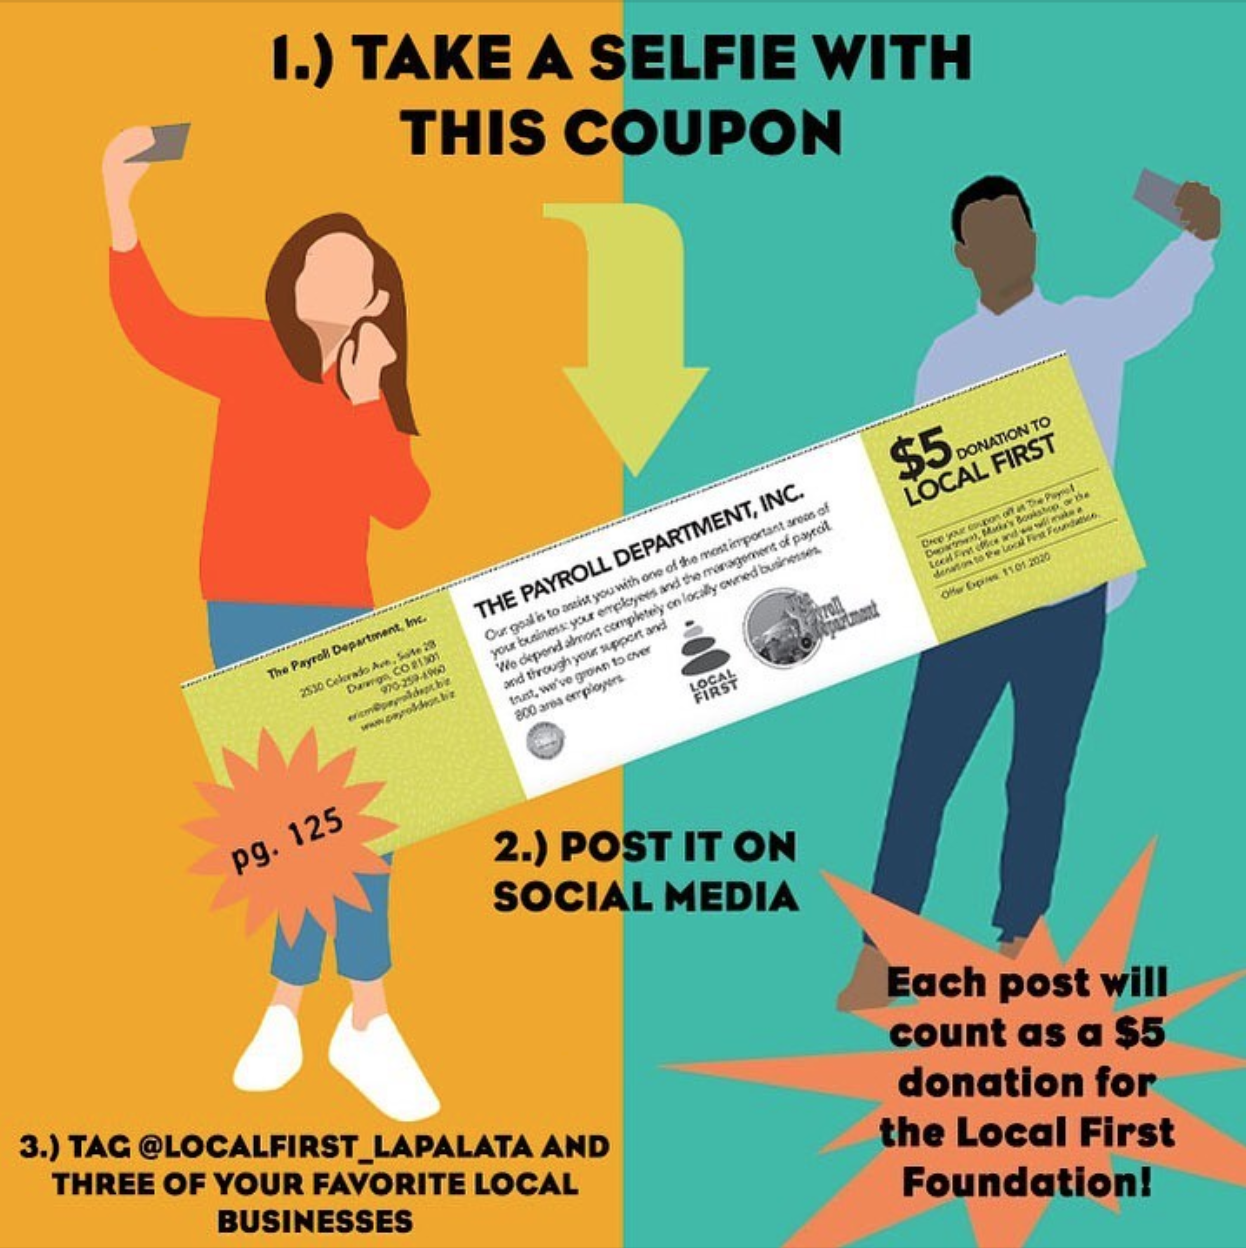 Images of two people taking selfies with the coupon for a $5 donation from the Payroll Department, found on page 125 of the 2020 Be Local Coupon Book.